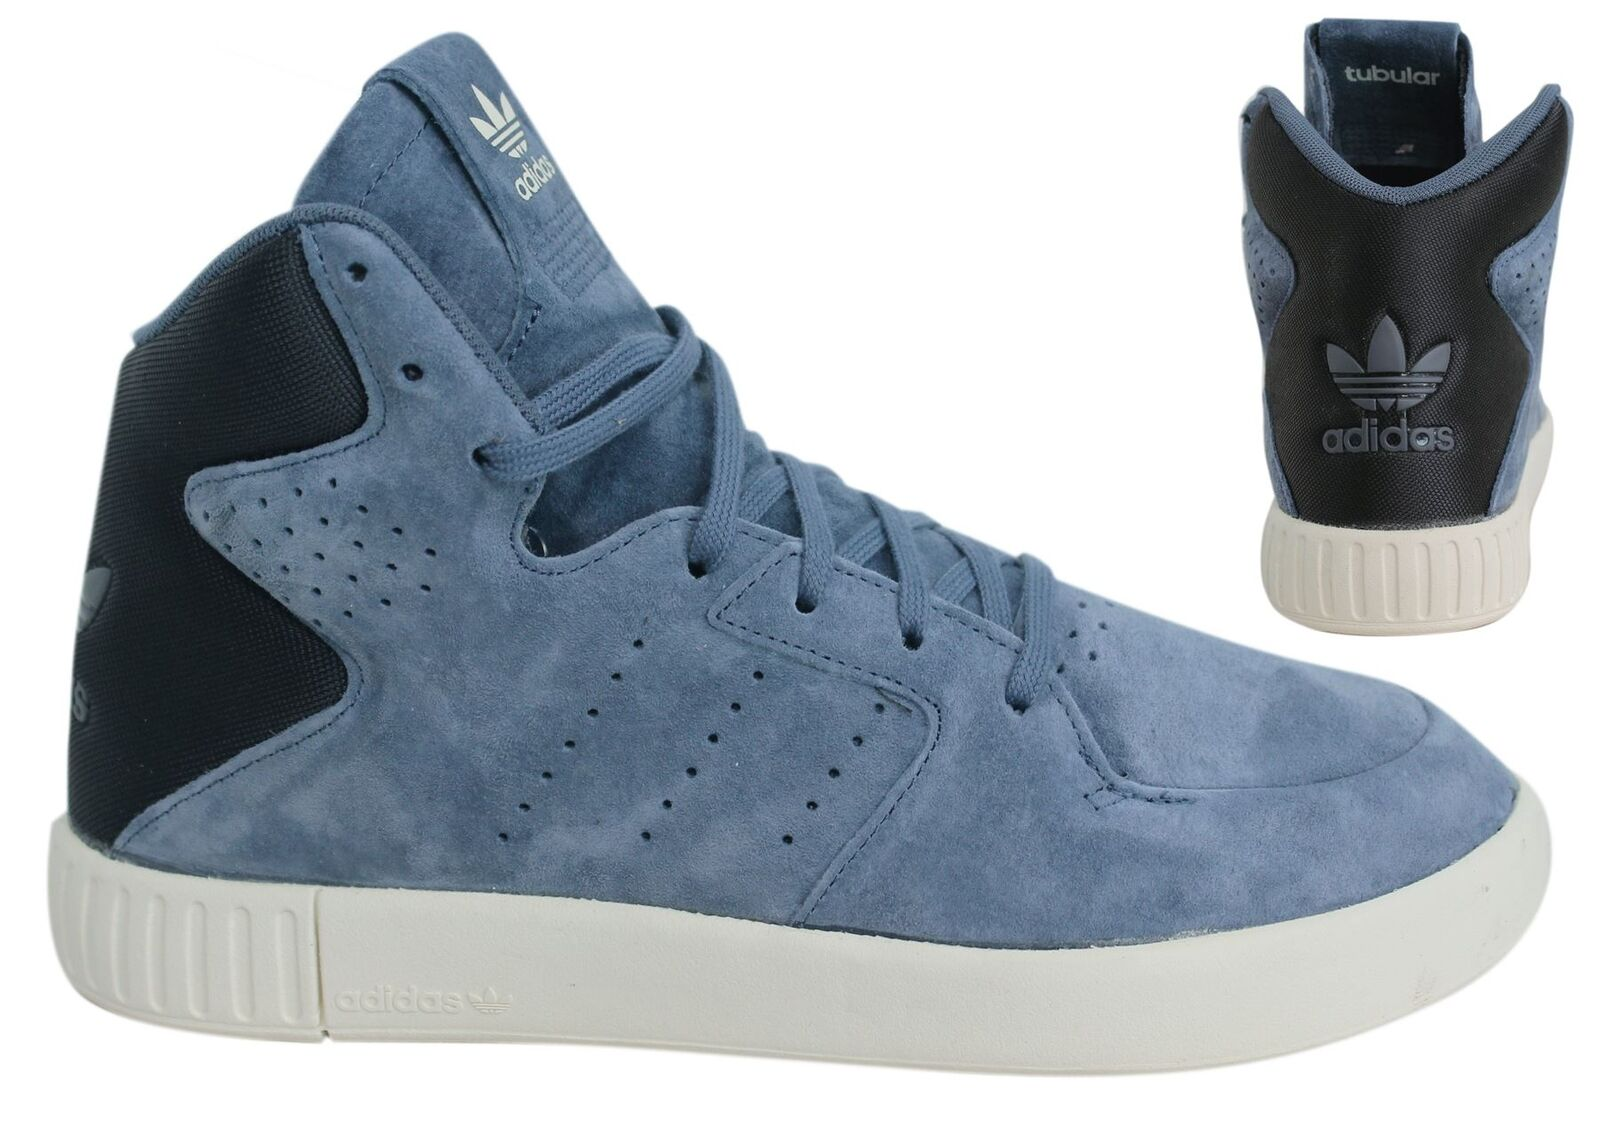 Descuento por tiempo limitado Adidas Originals Invader 2.0 Womens Lace Up Blue Leather Trainers S80554 D134